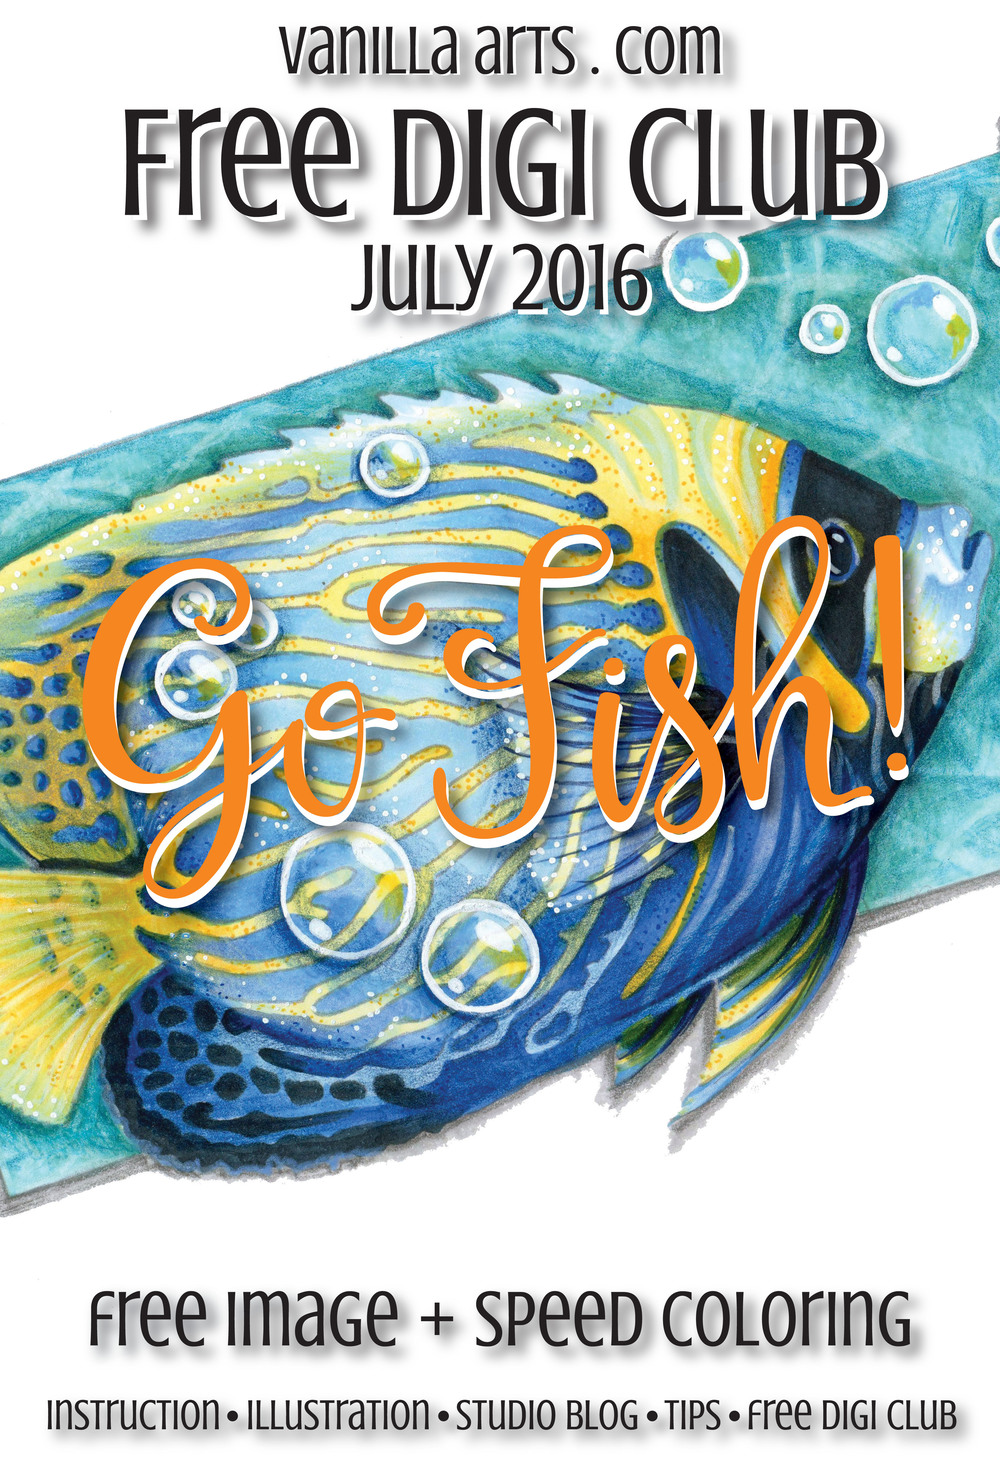 July 2016's Free Digi Club image. Every month subscribers receive 1 new coloring image | VanillaArts.com